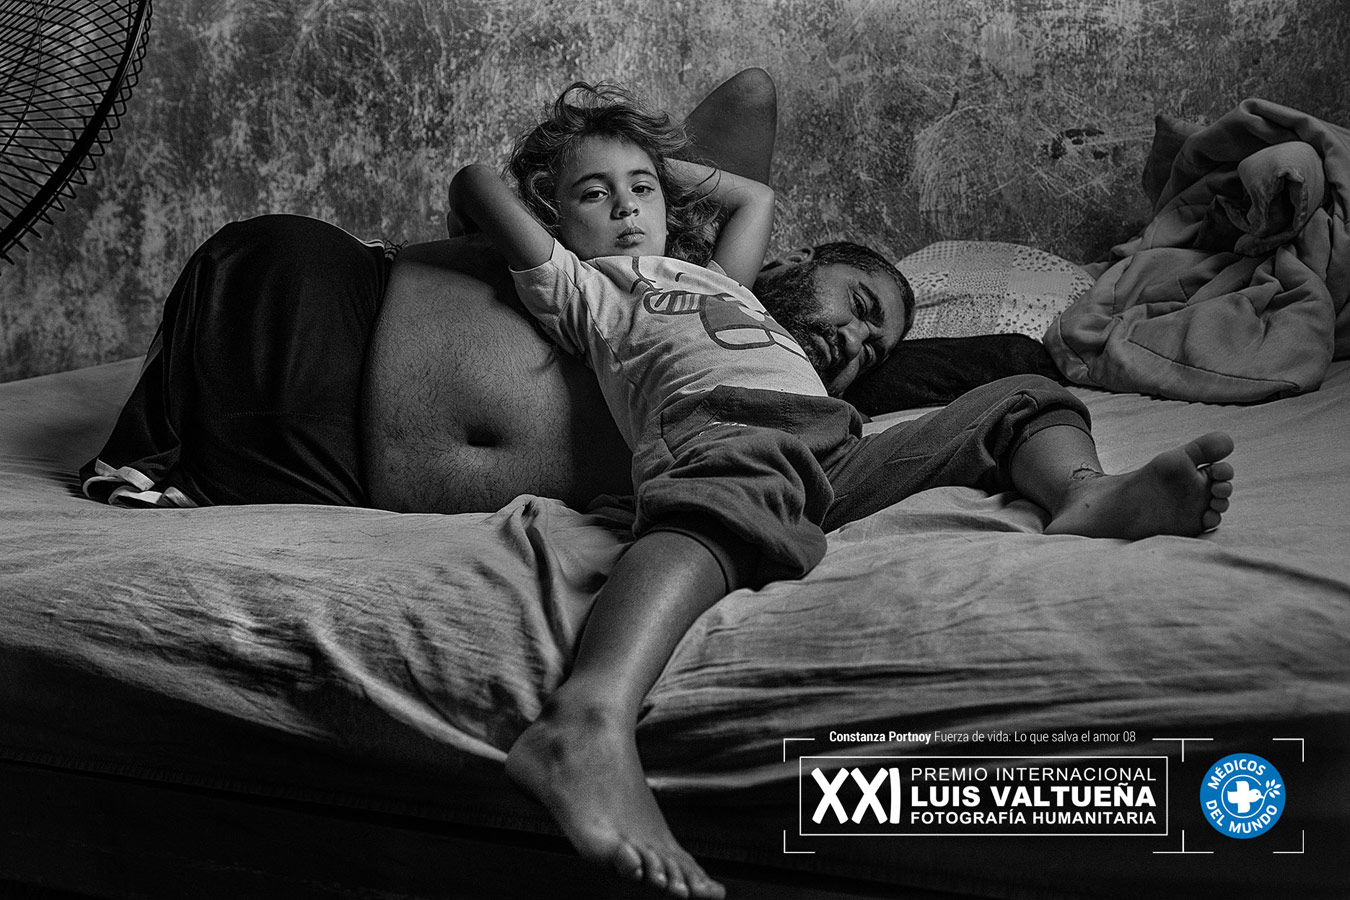 © Constanza Portnoy, Luis Valtueña International Humanitarian Photography Award